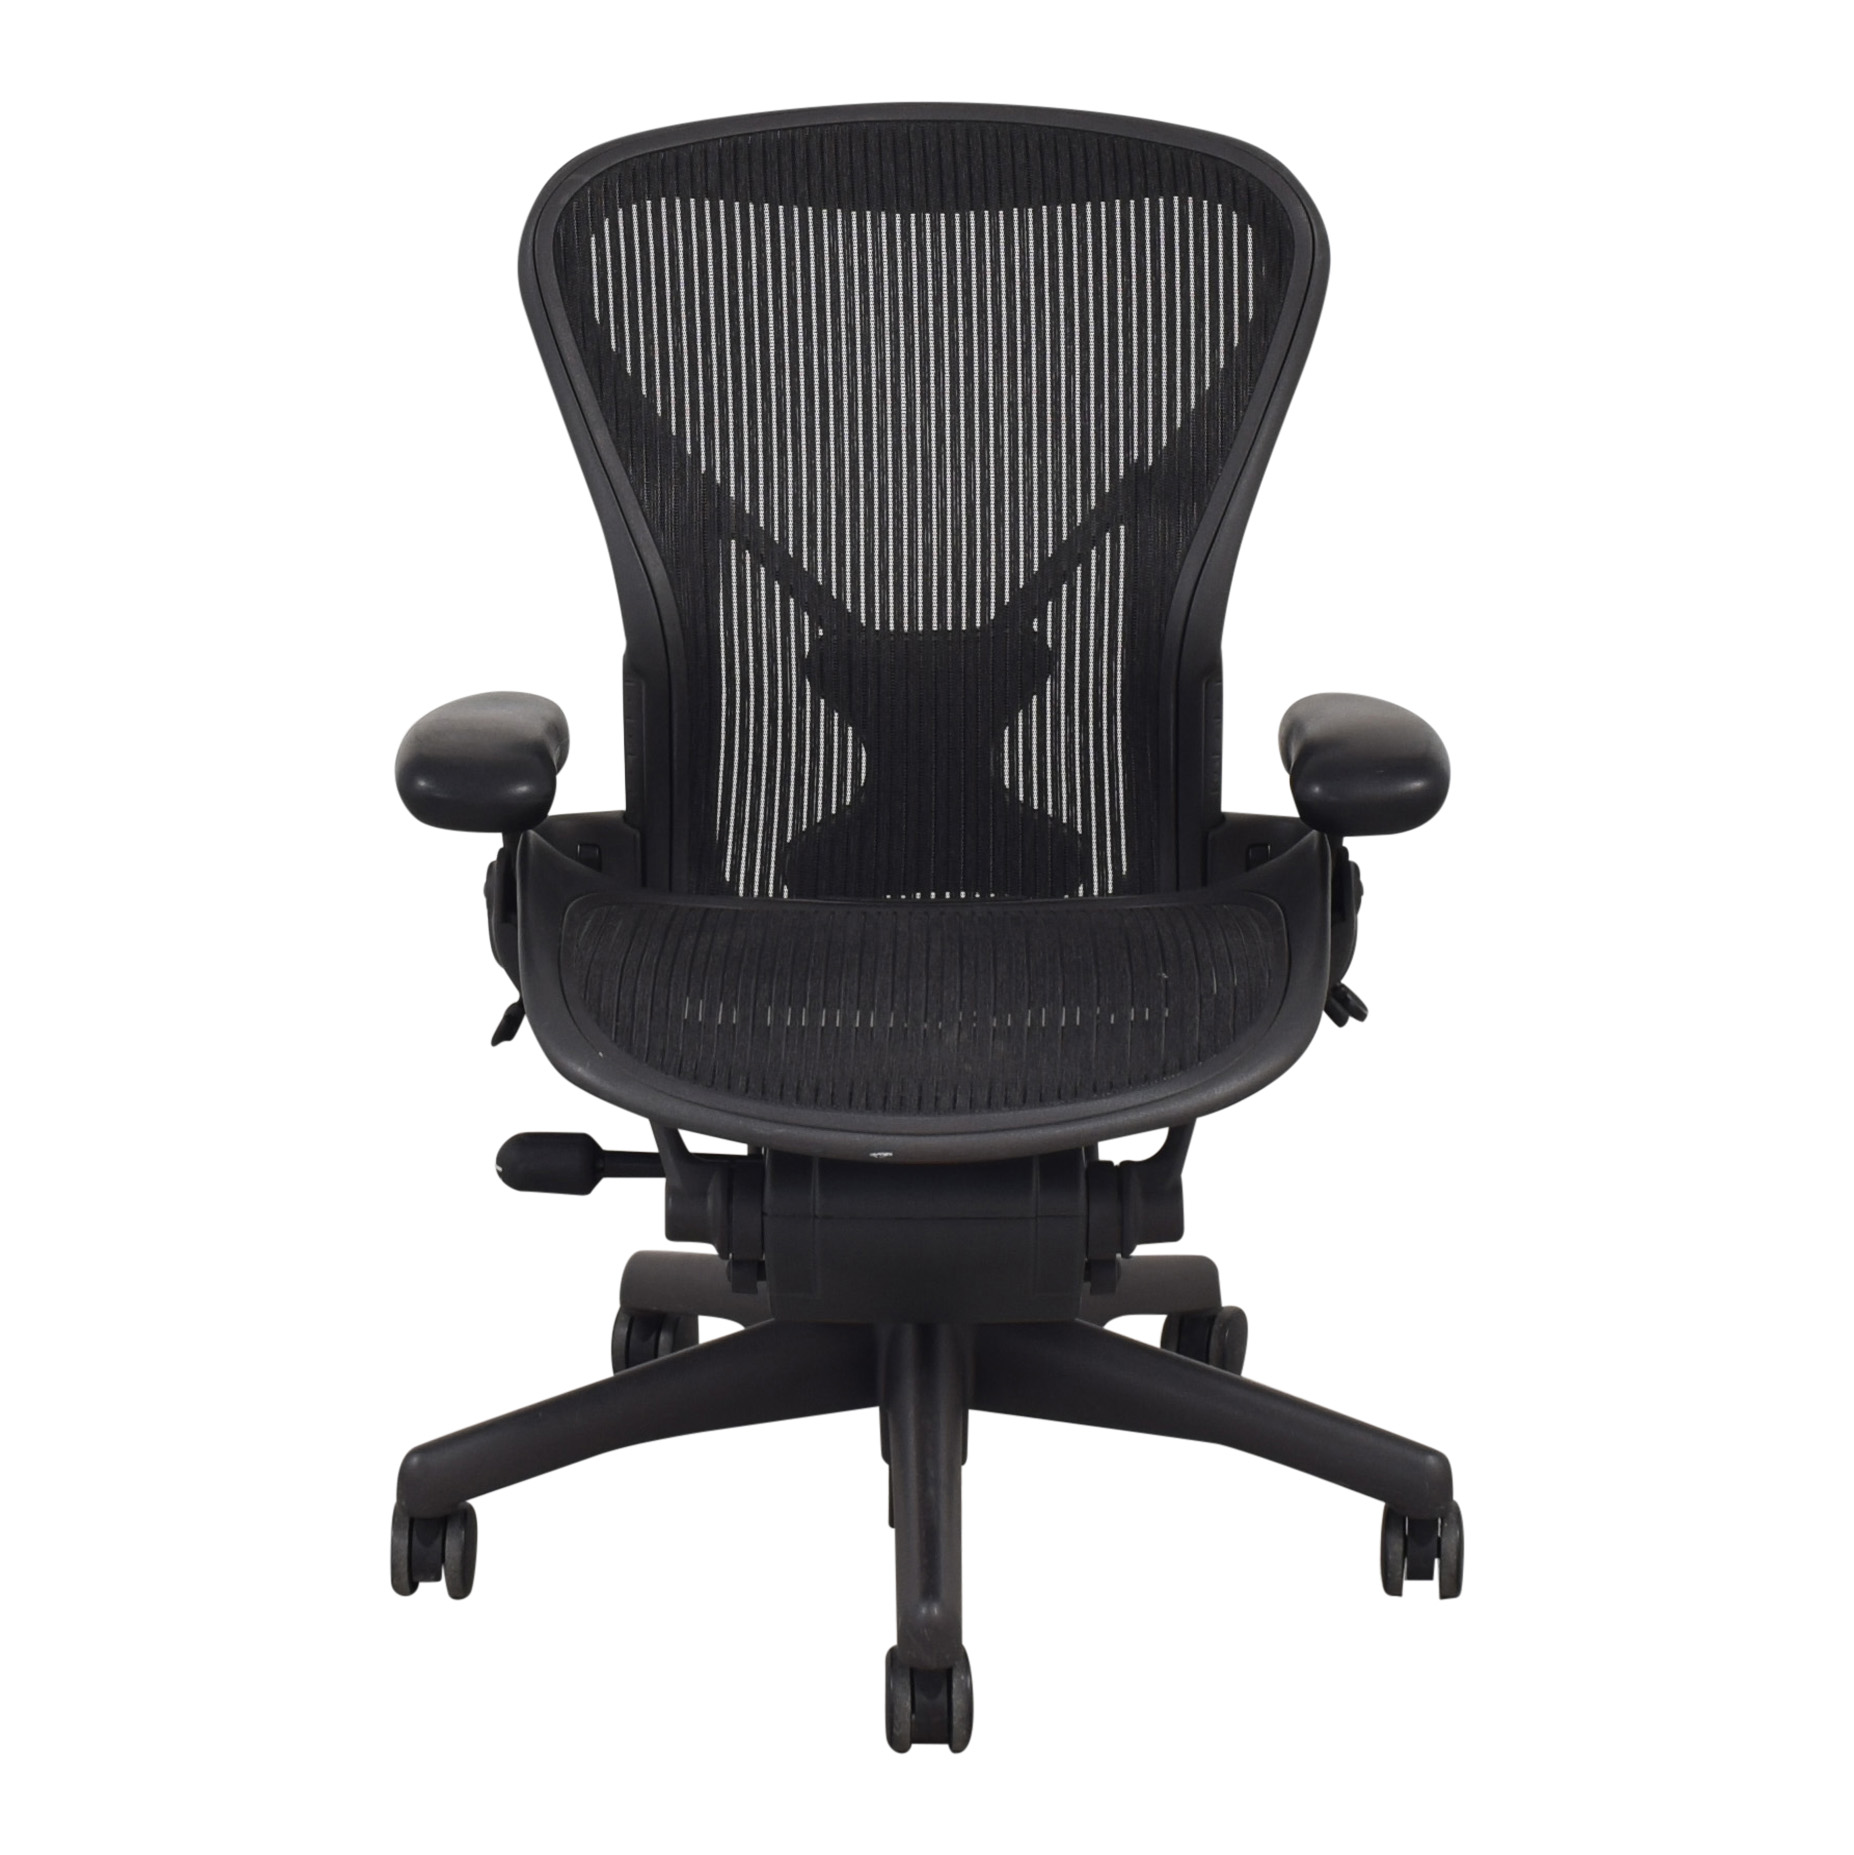 Herman Miller Herman Miller Size B Aeron Chair Home Office Chairs